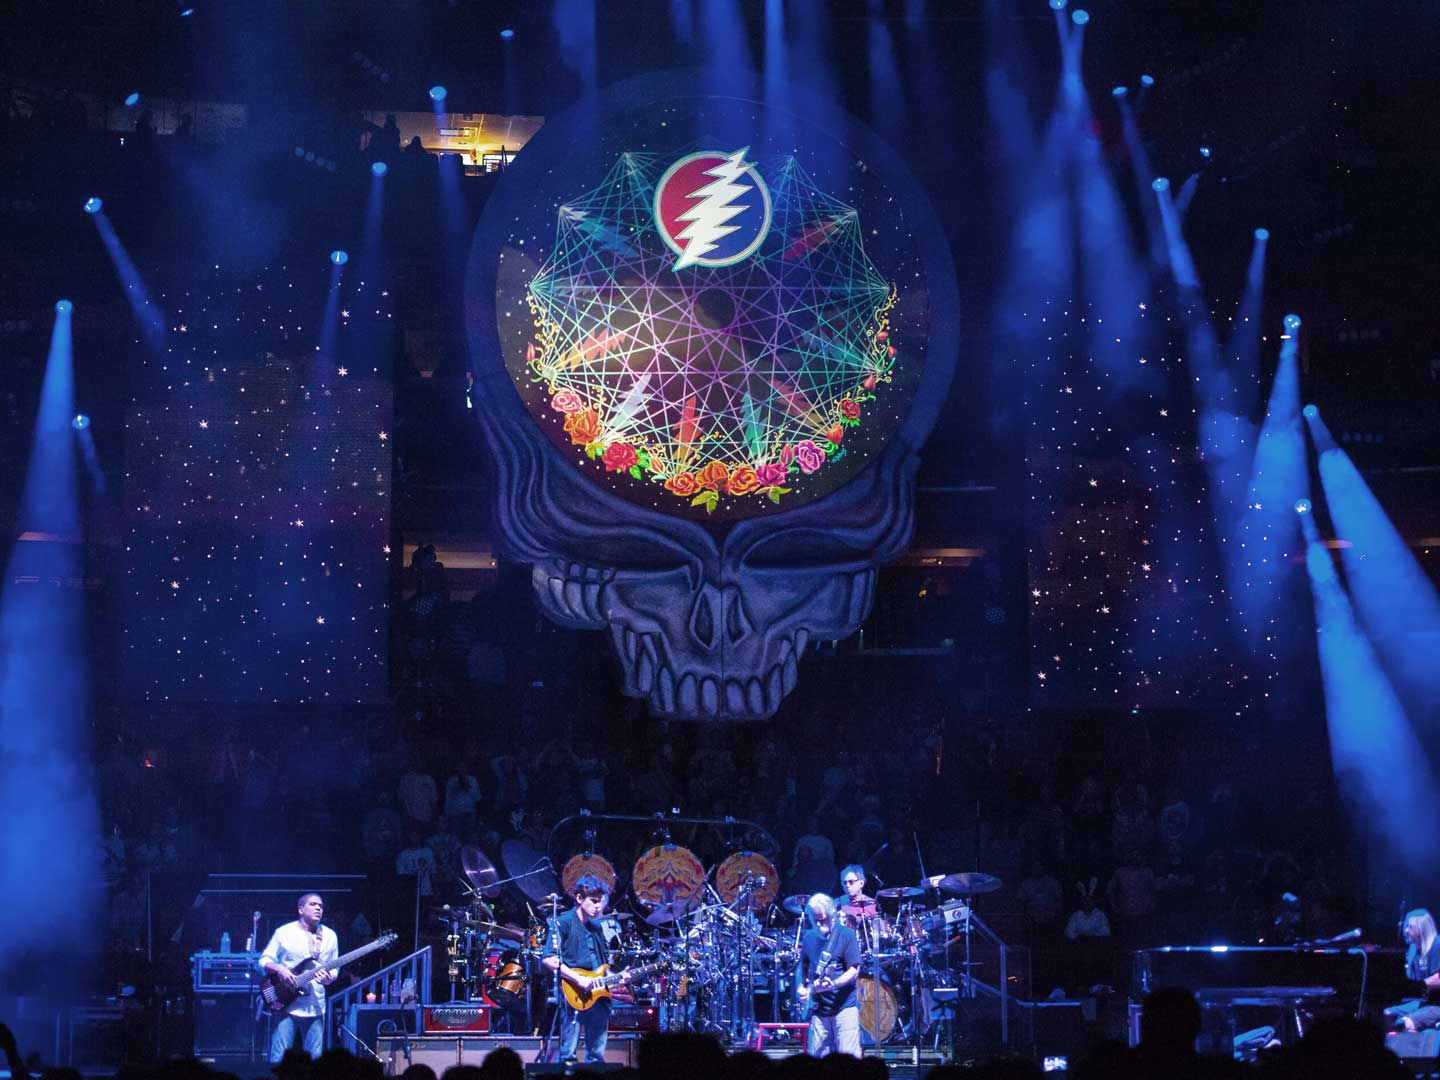 Dead & Company performing live